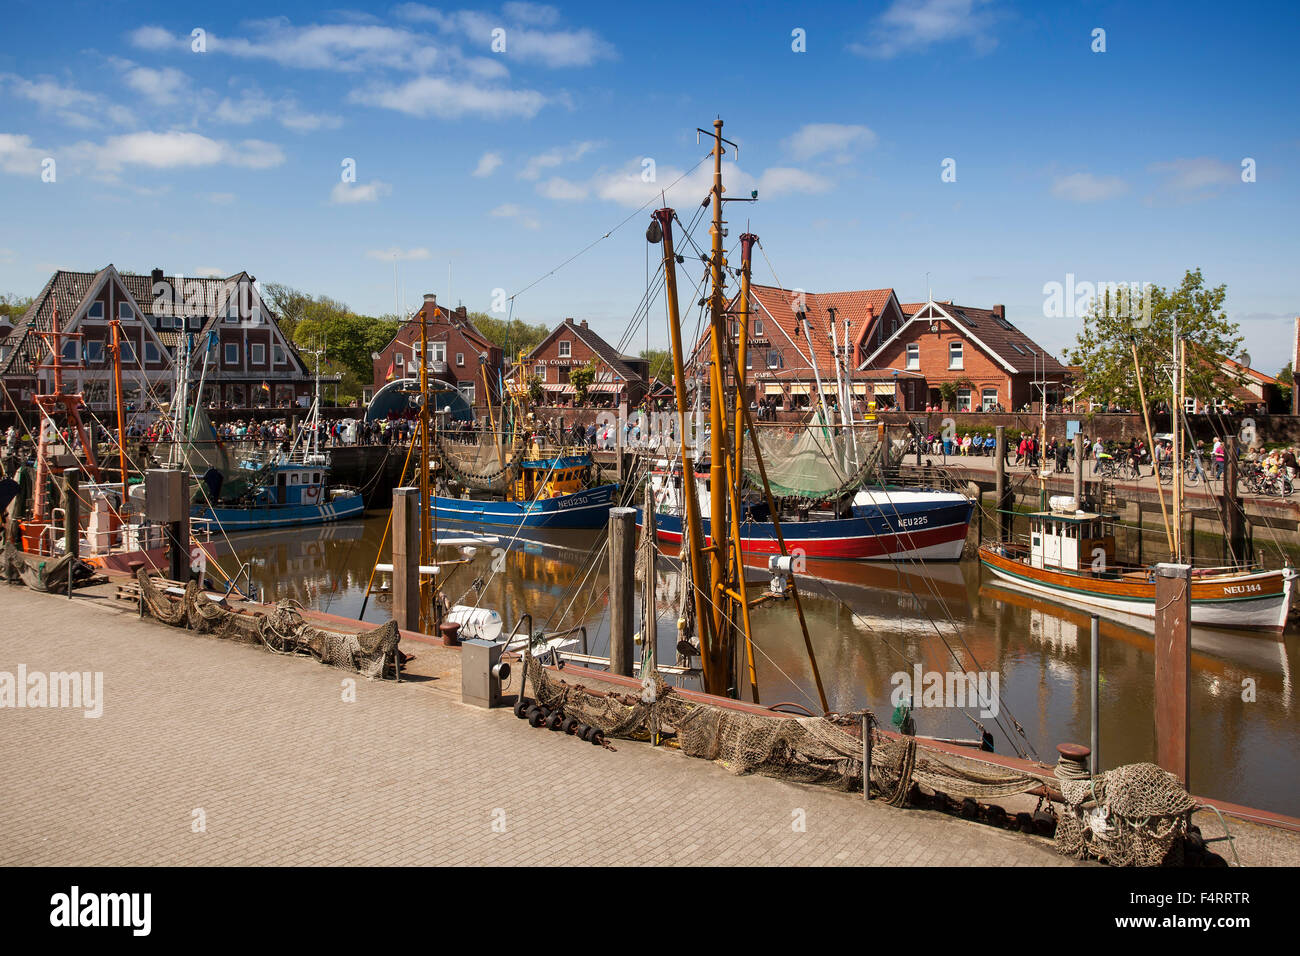 Crab cutters in the harbour of  Neuharlingersiel, East Friesland, Lower Saxony, Germany, Europe Stock Photo